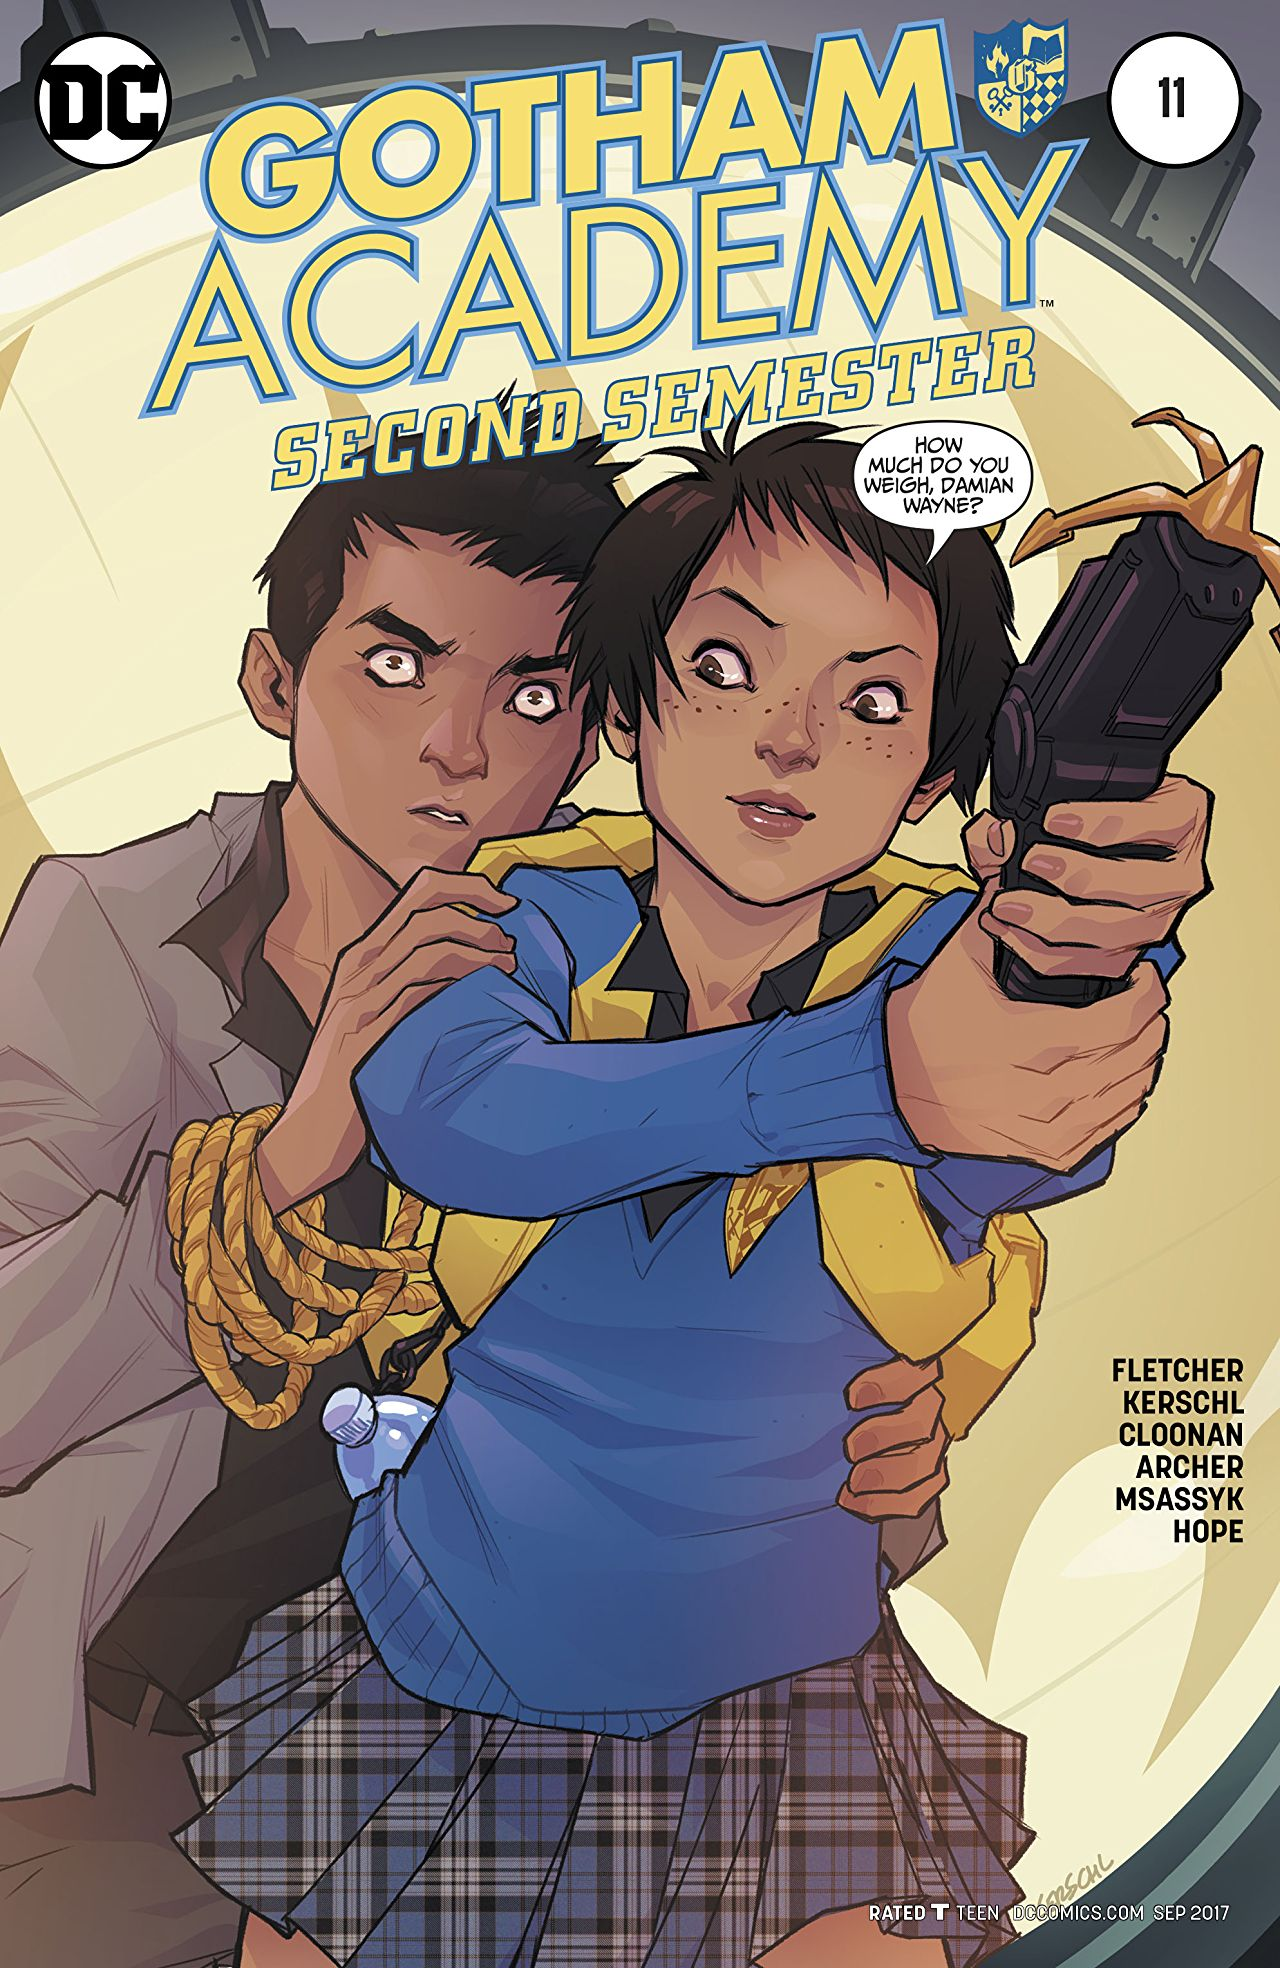 review GOTHAM ACADEMY : SECOND SEMESTER #11